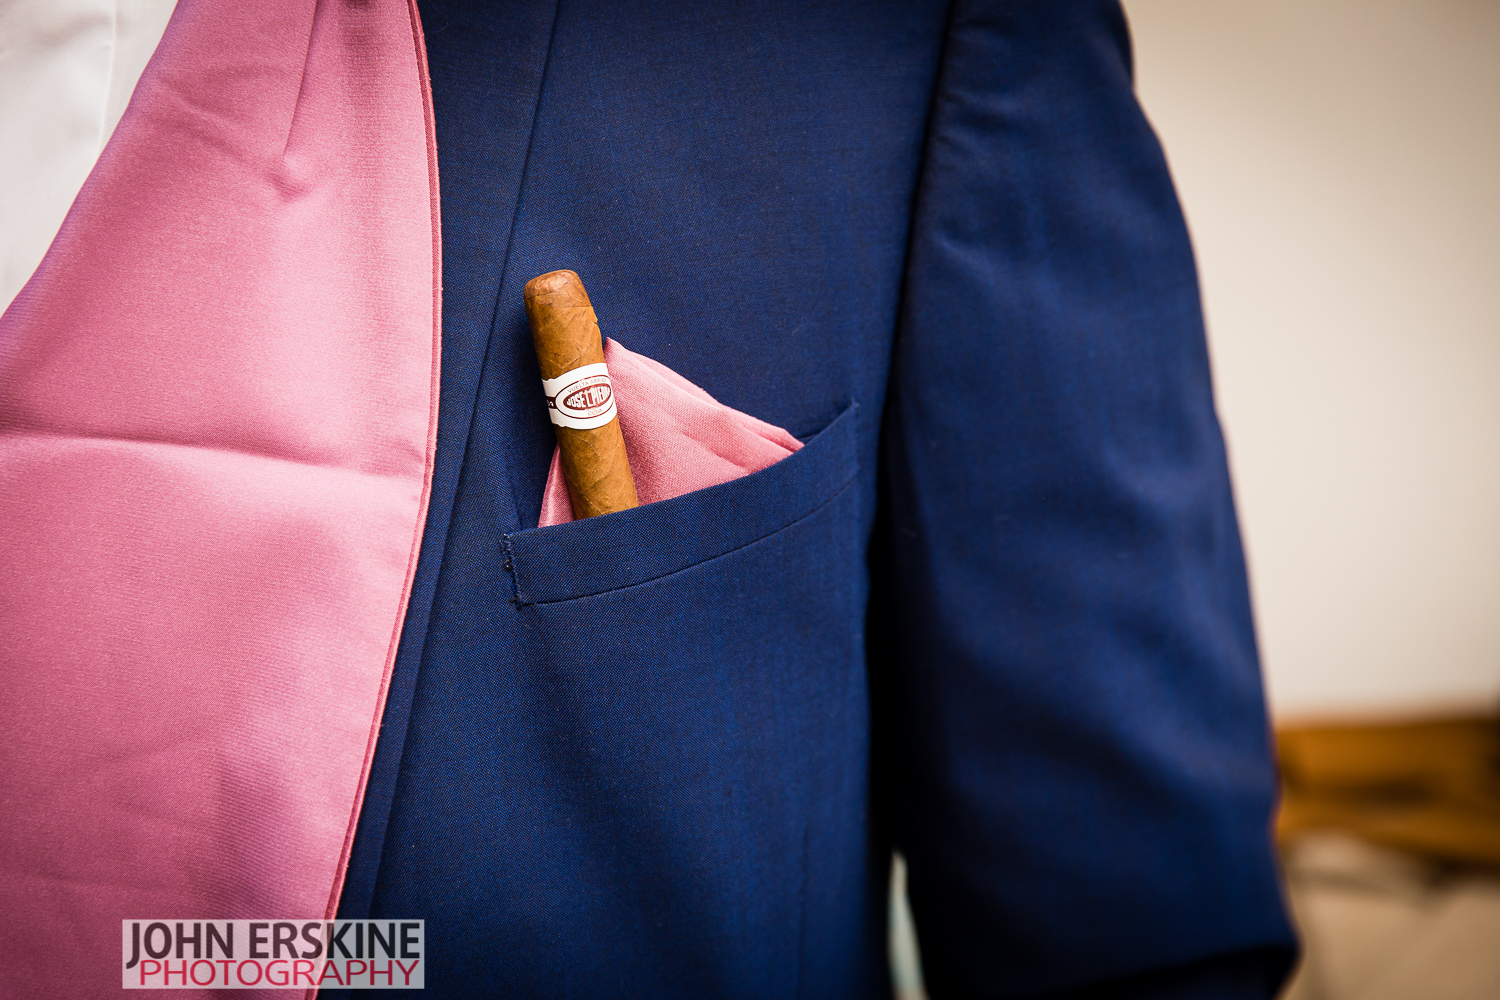 Wedding Cigar Detail Shot